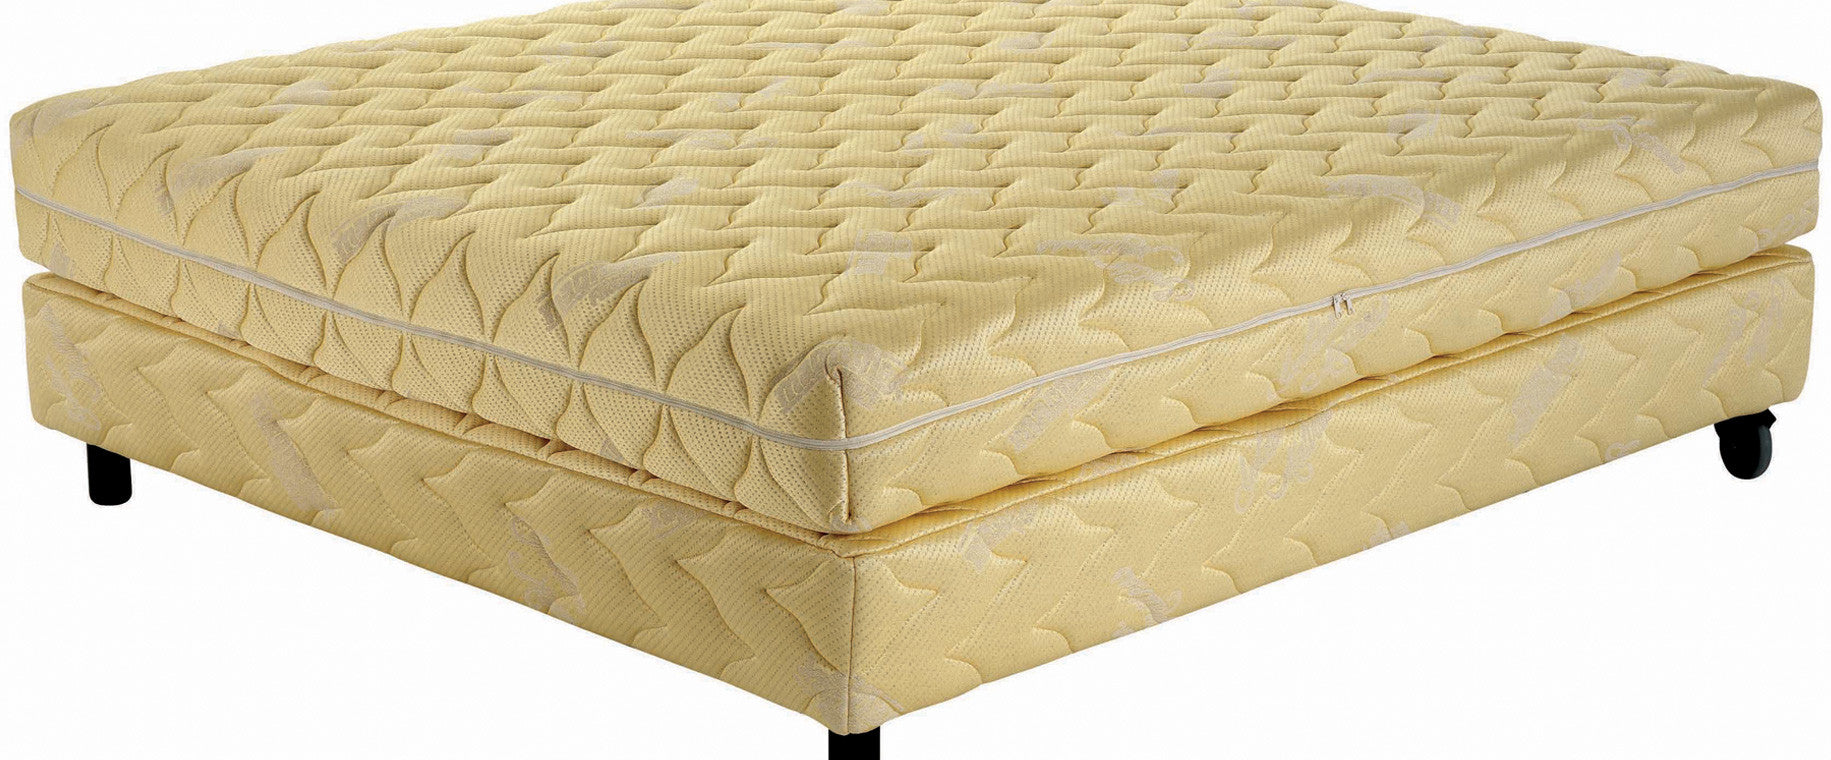 Buy Magniflex Memory Foam Luxury Mattresses Gold Mattress Online Happymonk India